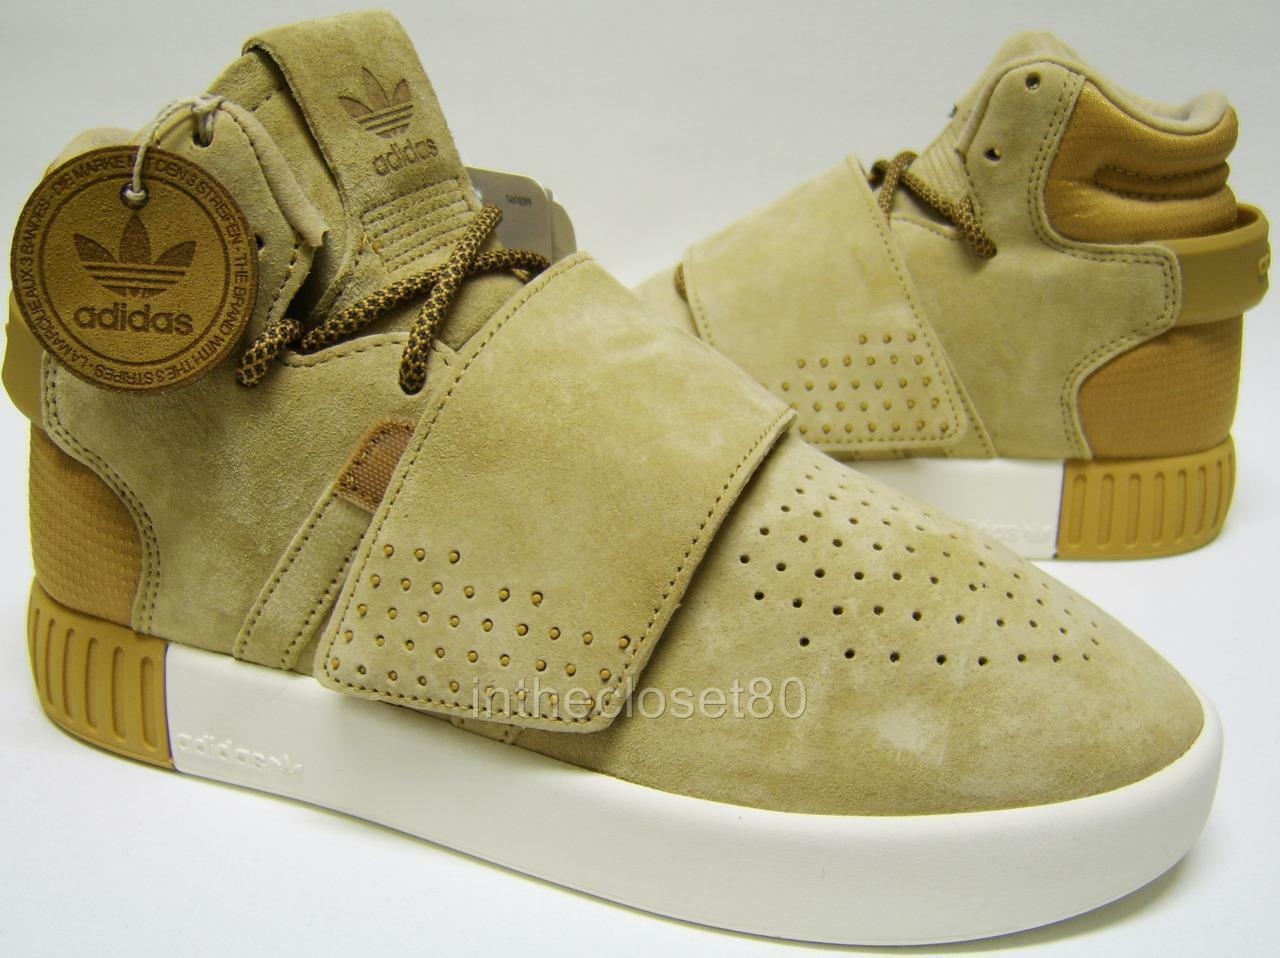 Adidas Tubular Invader Strap Wheat Tan Brown Suede Juniors Girls Boys Trainers